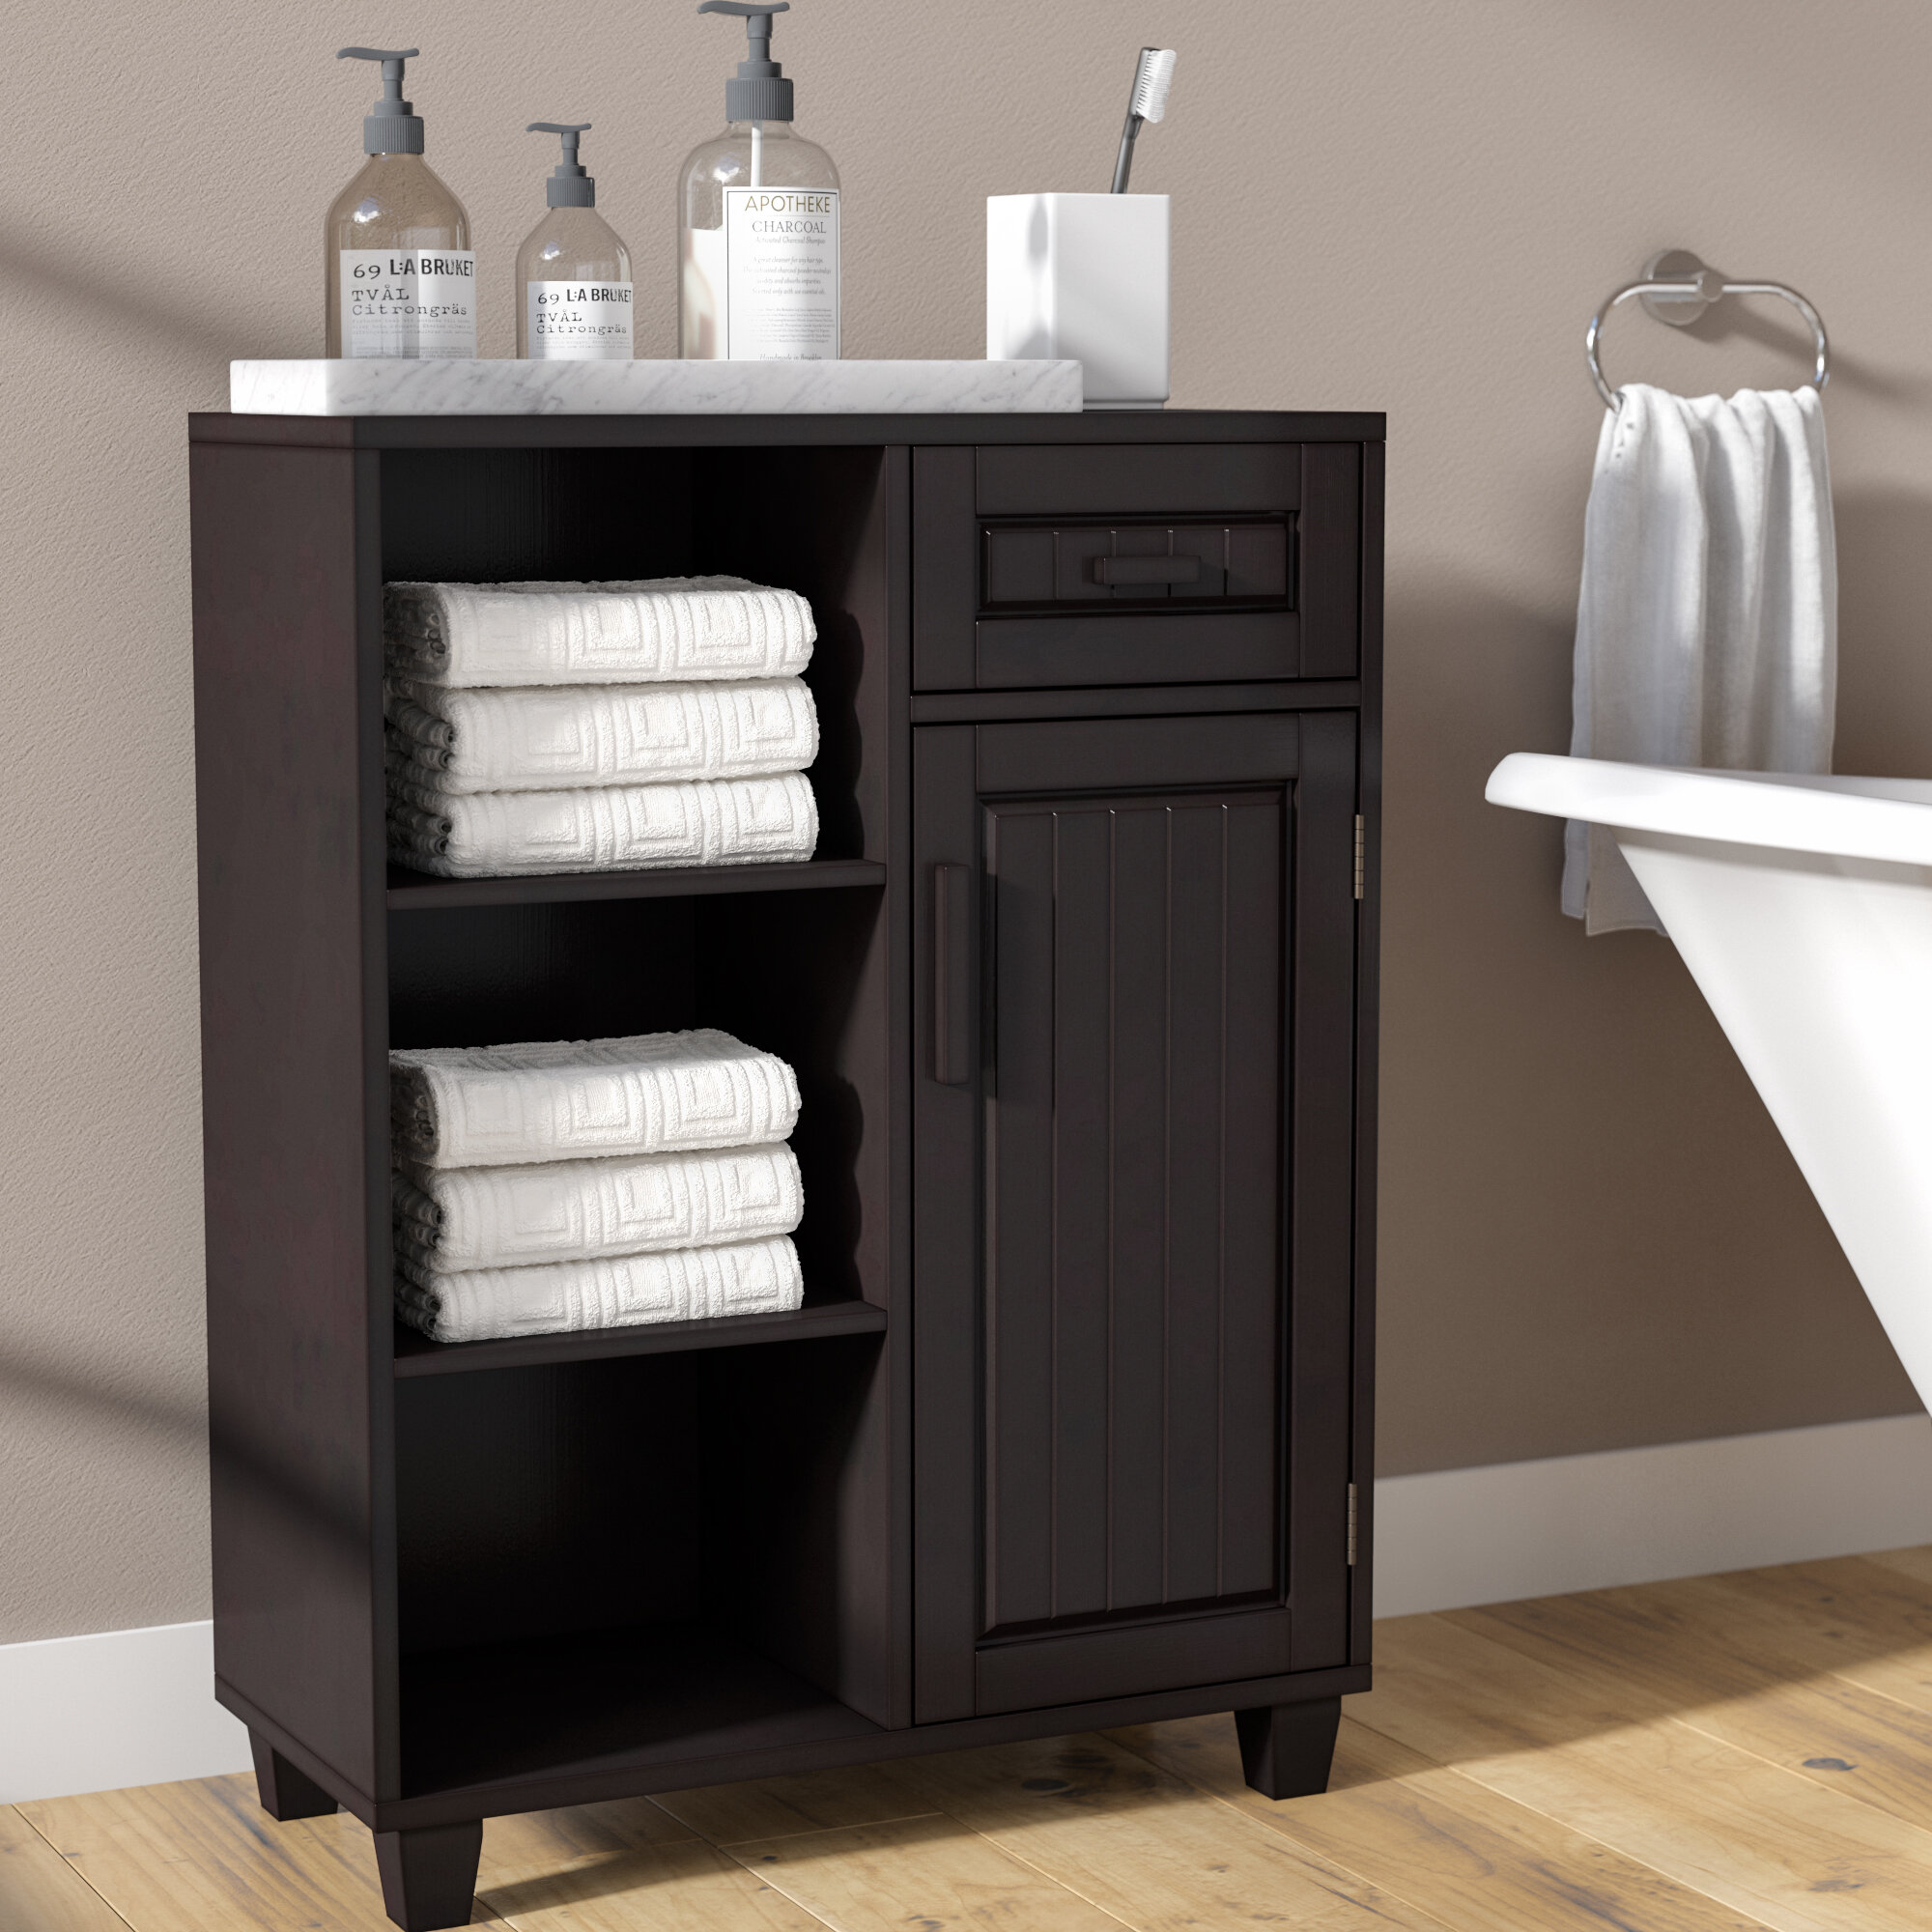 Bathroom Cabinets You Ll Love In 2020